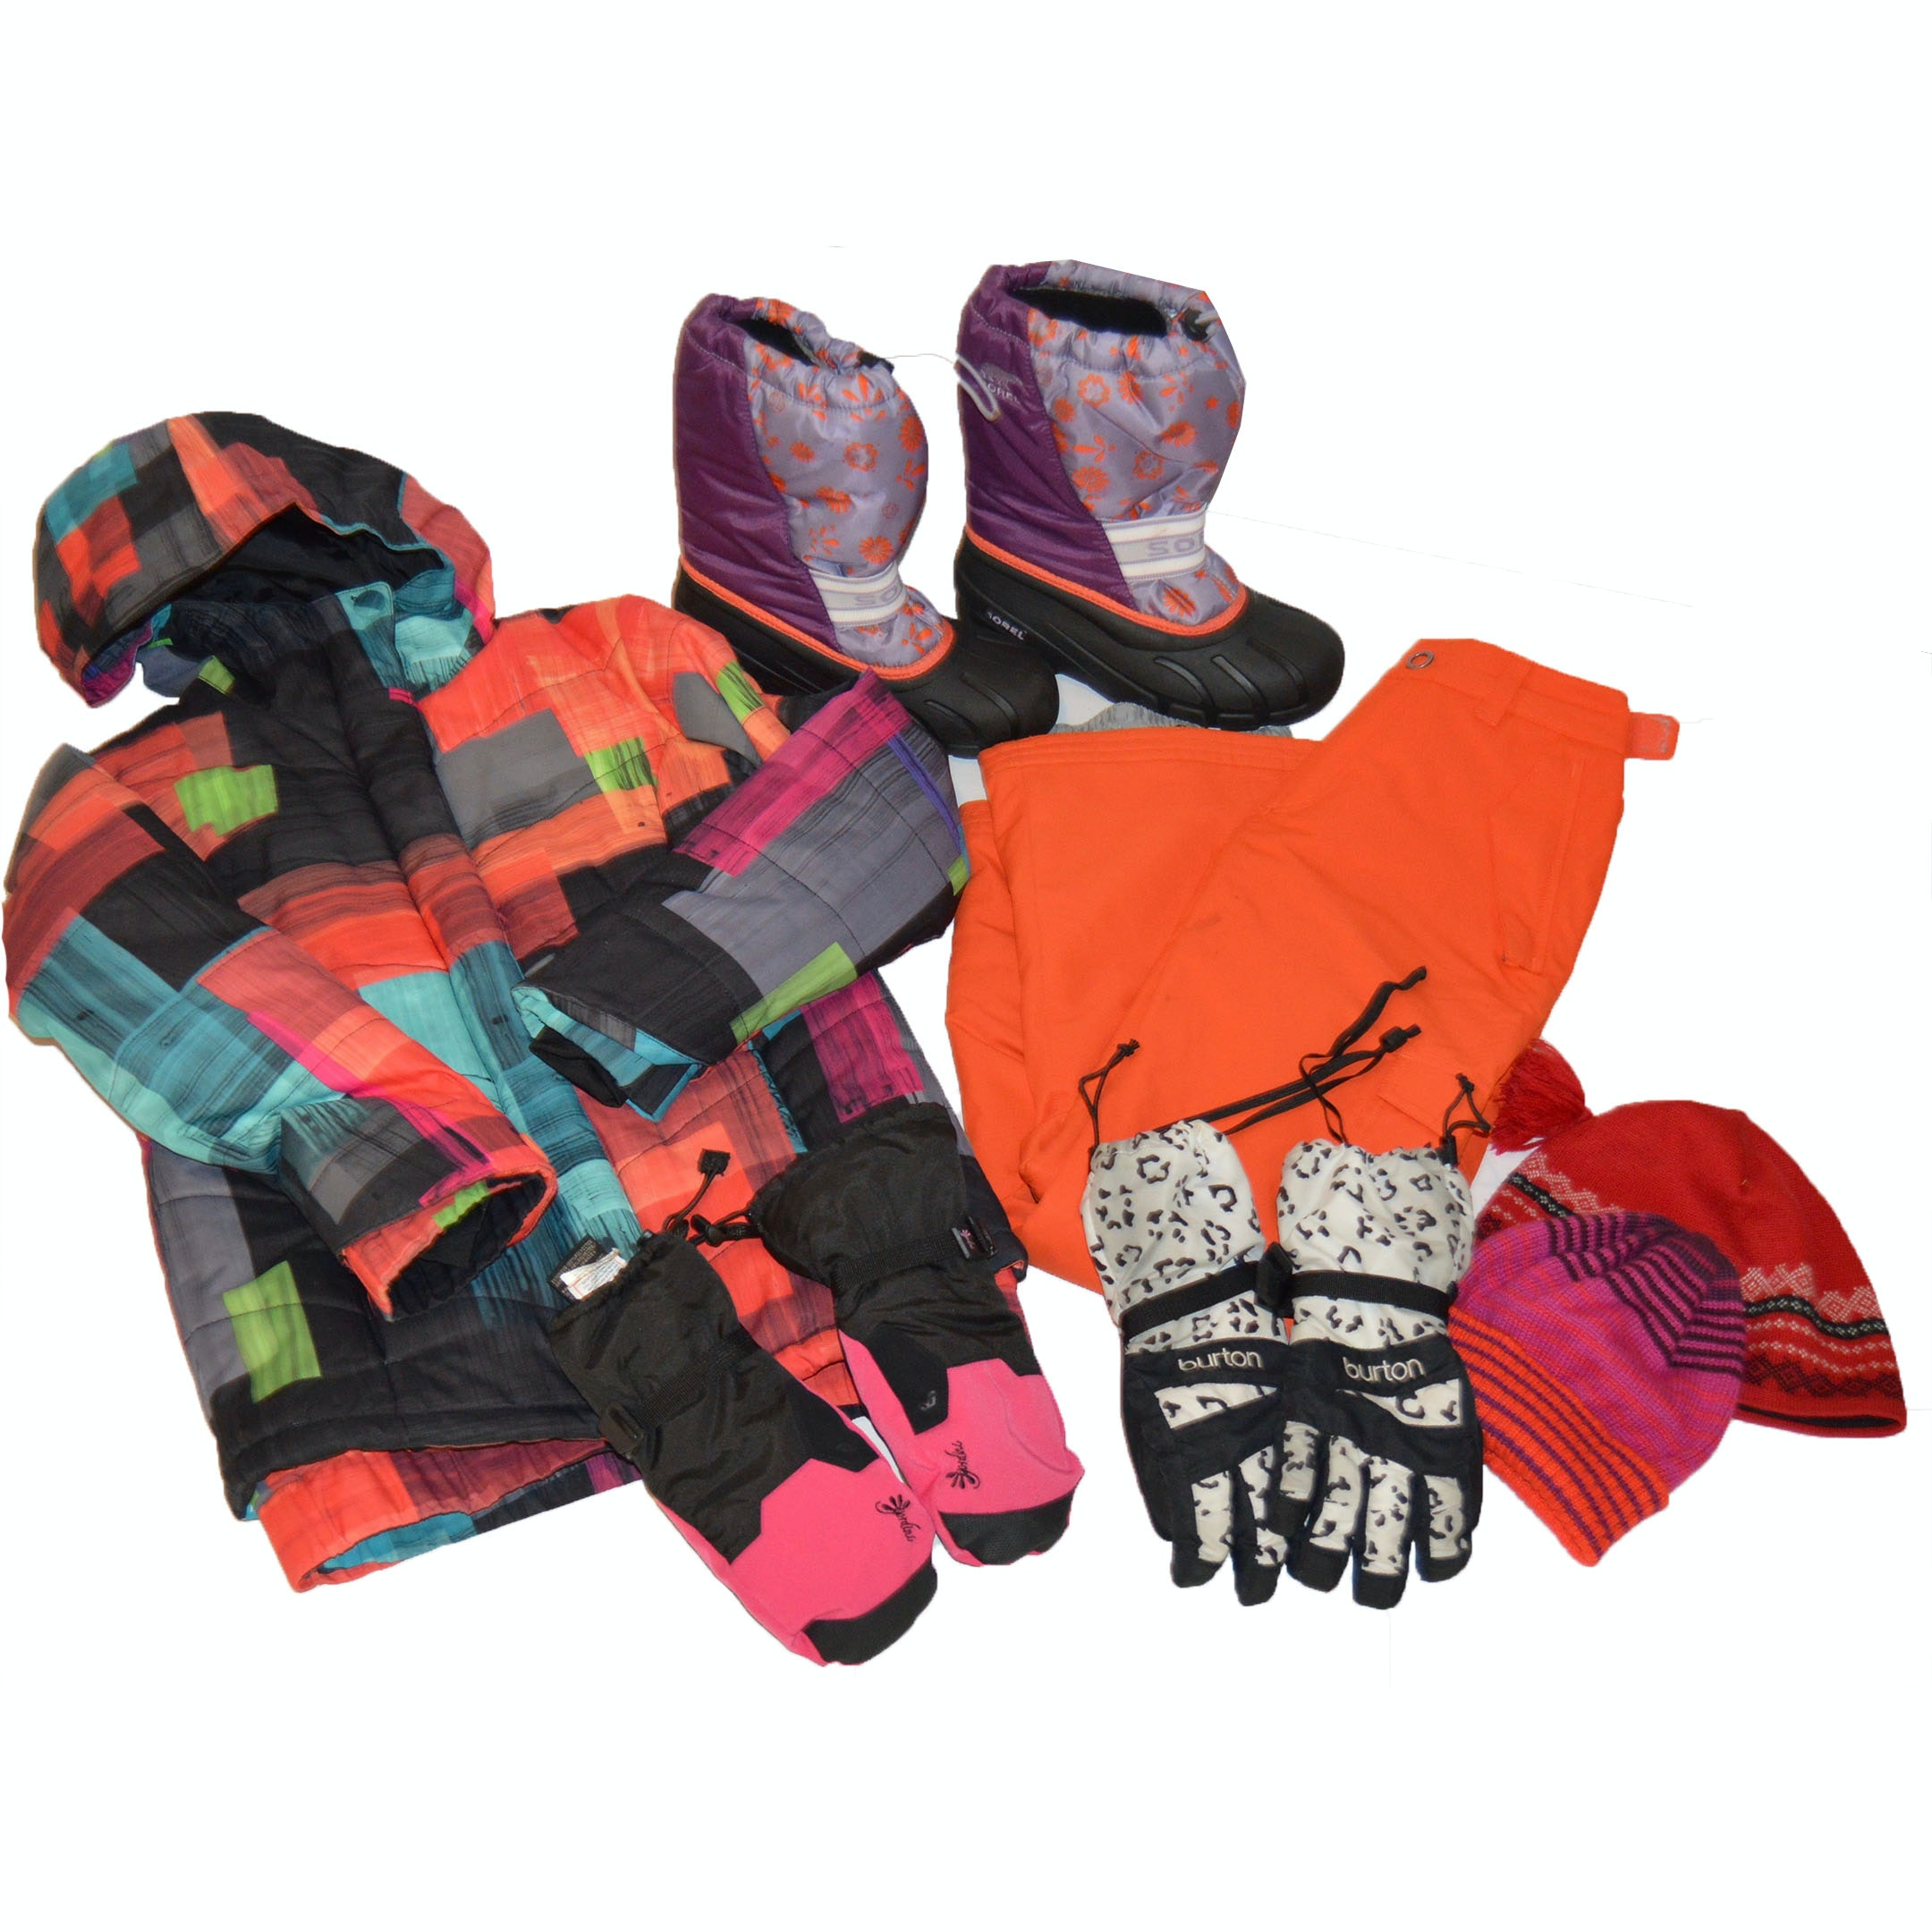 Girls' Ski Apparel and Winter Boots Featuring Spyder